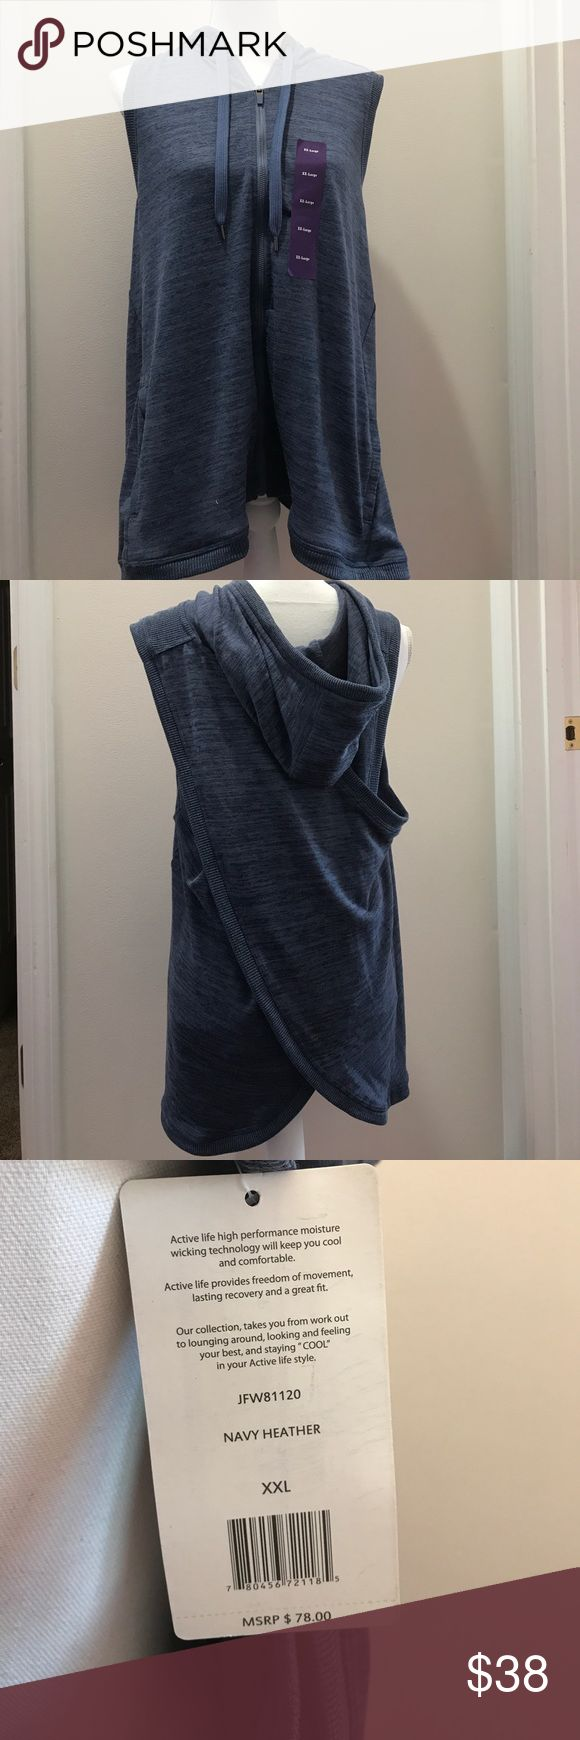 Split Back Sleeveless Navy Hoodie, New With Tags! Size XXL, Super Cute! Active Life Tops Sweatshirts & Hoodies